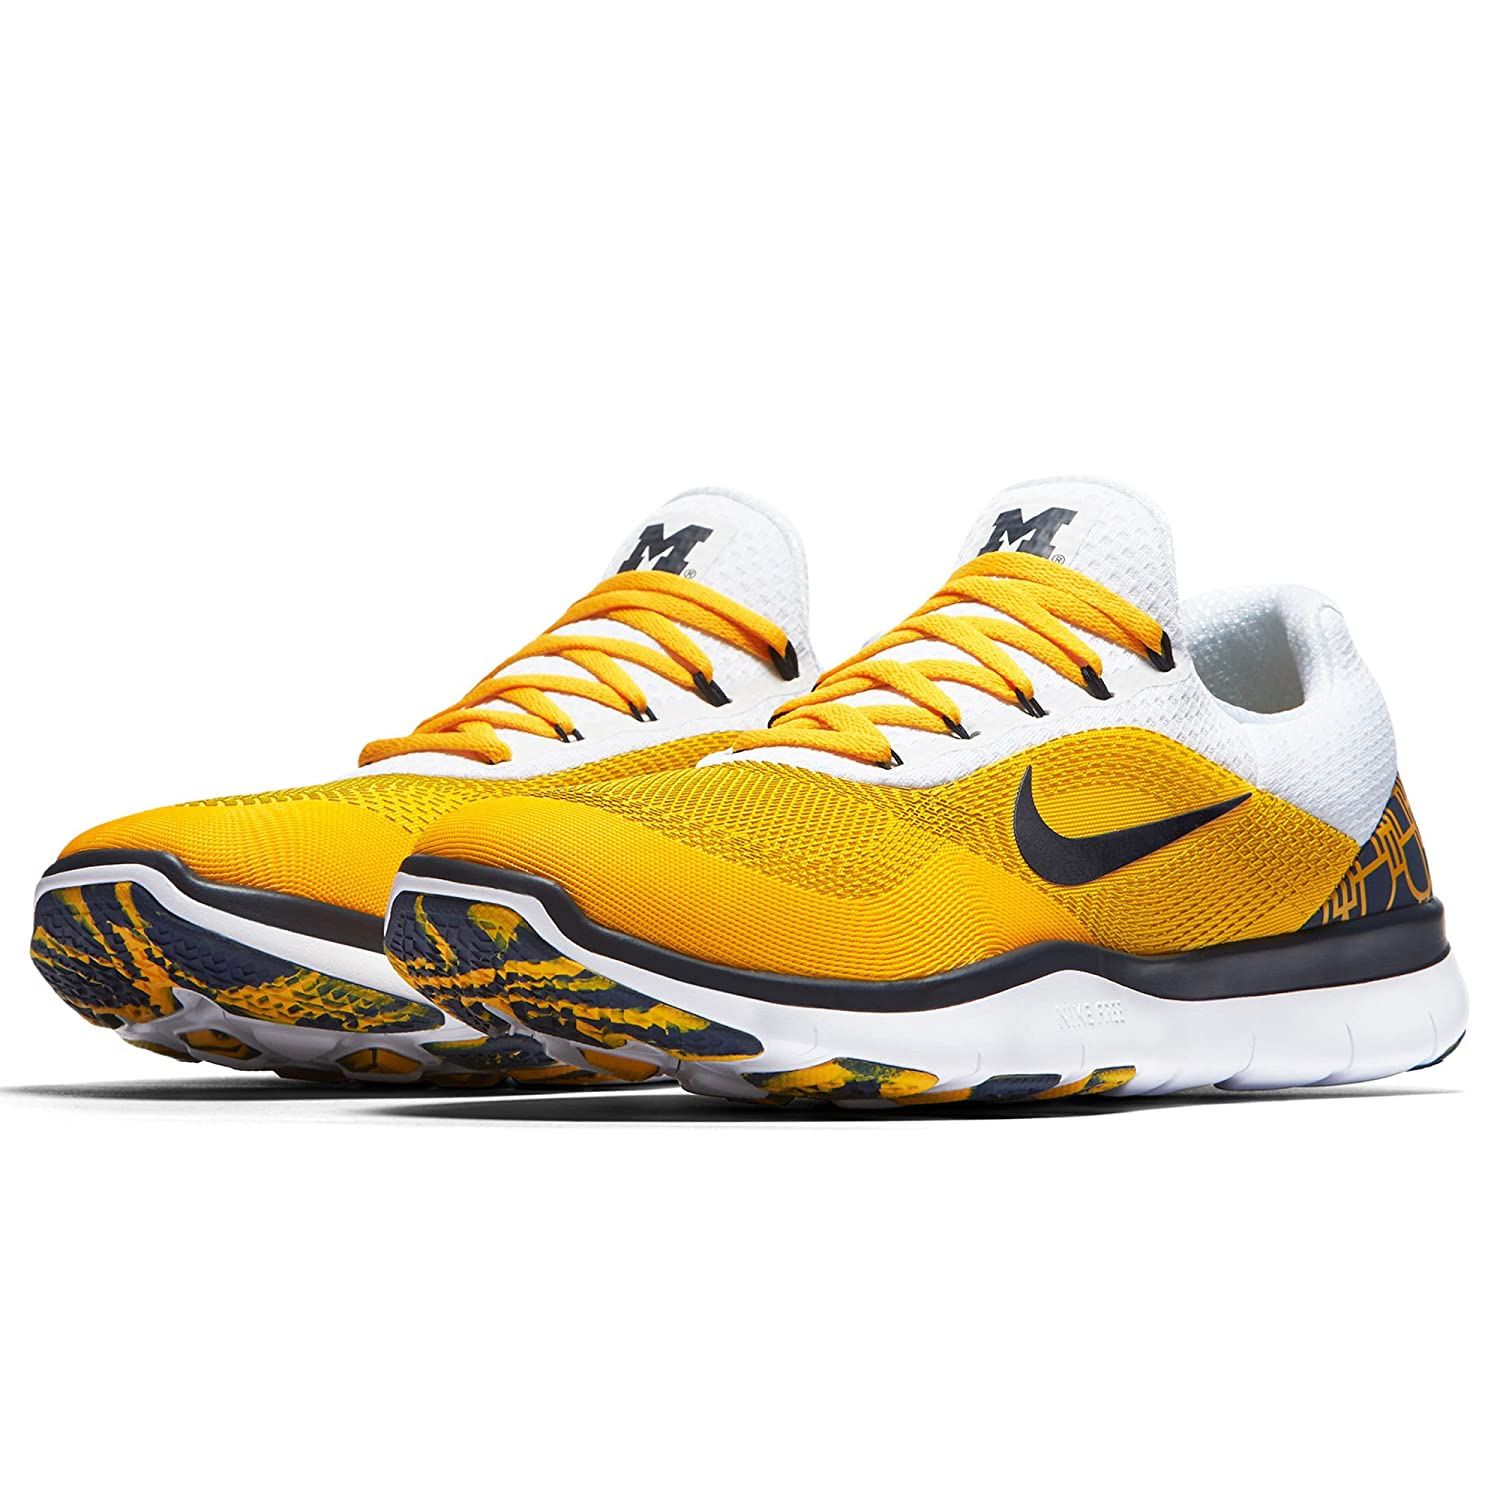 c63de55276b58 Amazon.com  Nike Michigan Wolverines Free Trainer V7 Week Zero College Shoes  - Size Men s 9 M US  Clothing